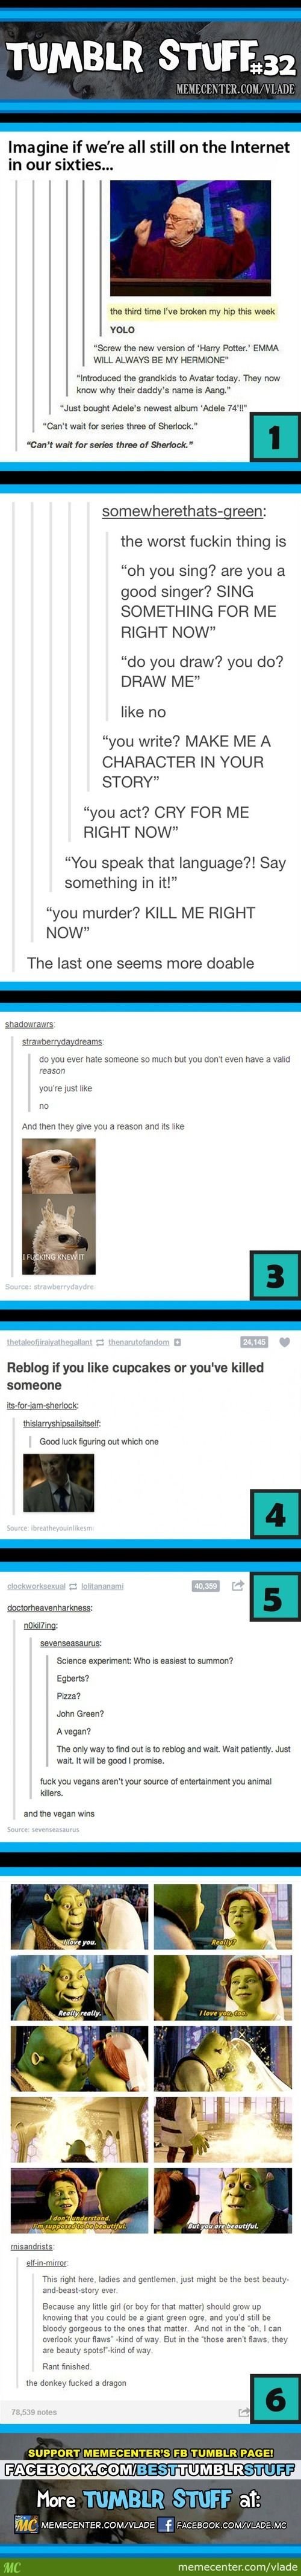 Tumblr Stuff Memes. Best Collection of Funny Tumblr Stuff Pictures